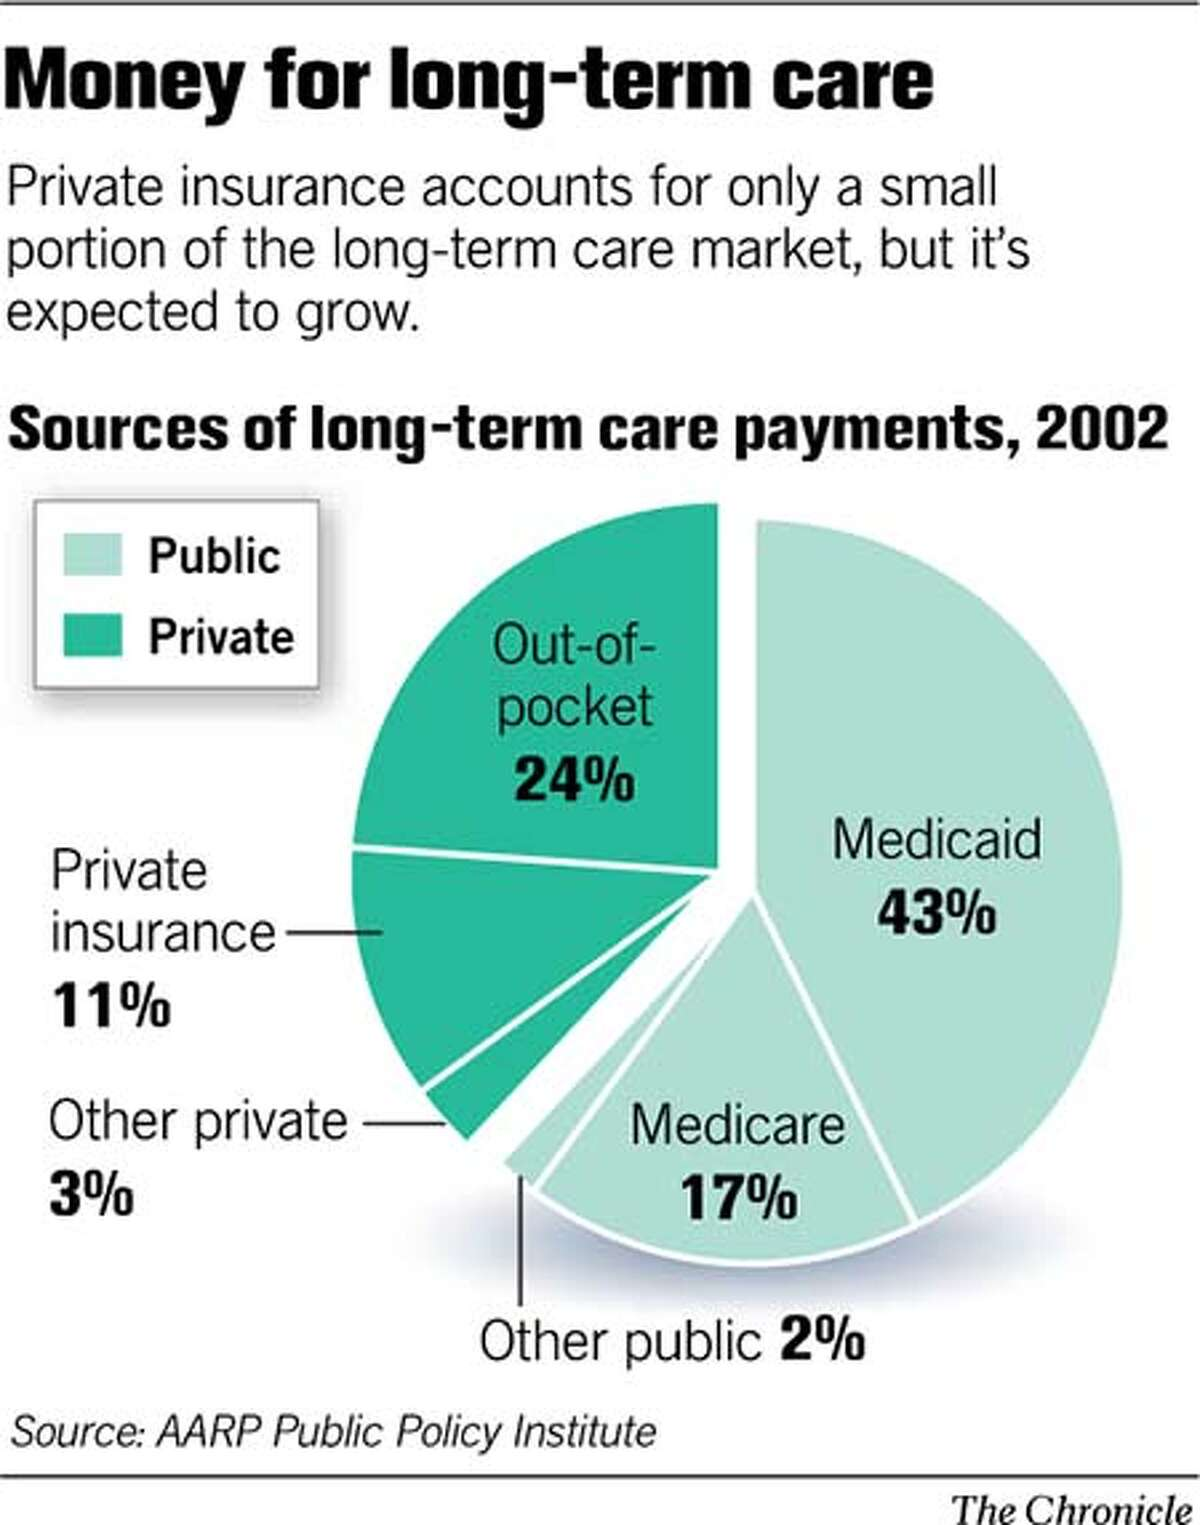 Money For Long-Term Care. Chronicle Graphic